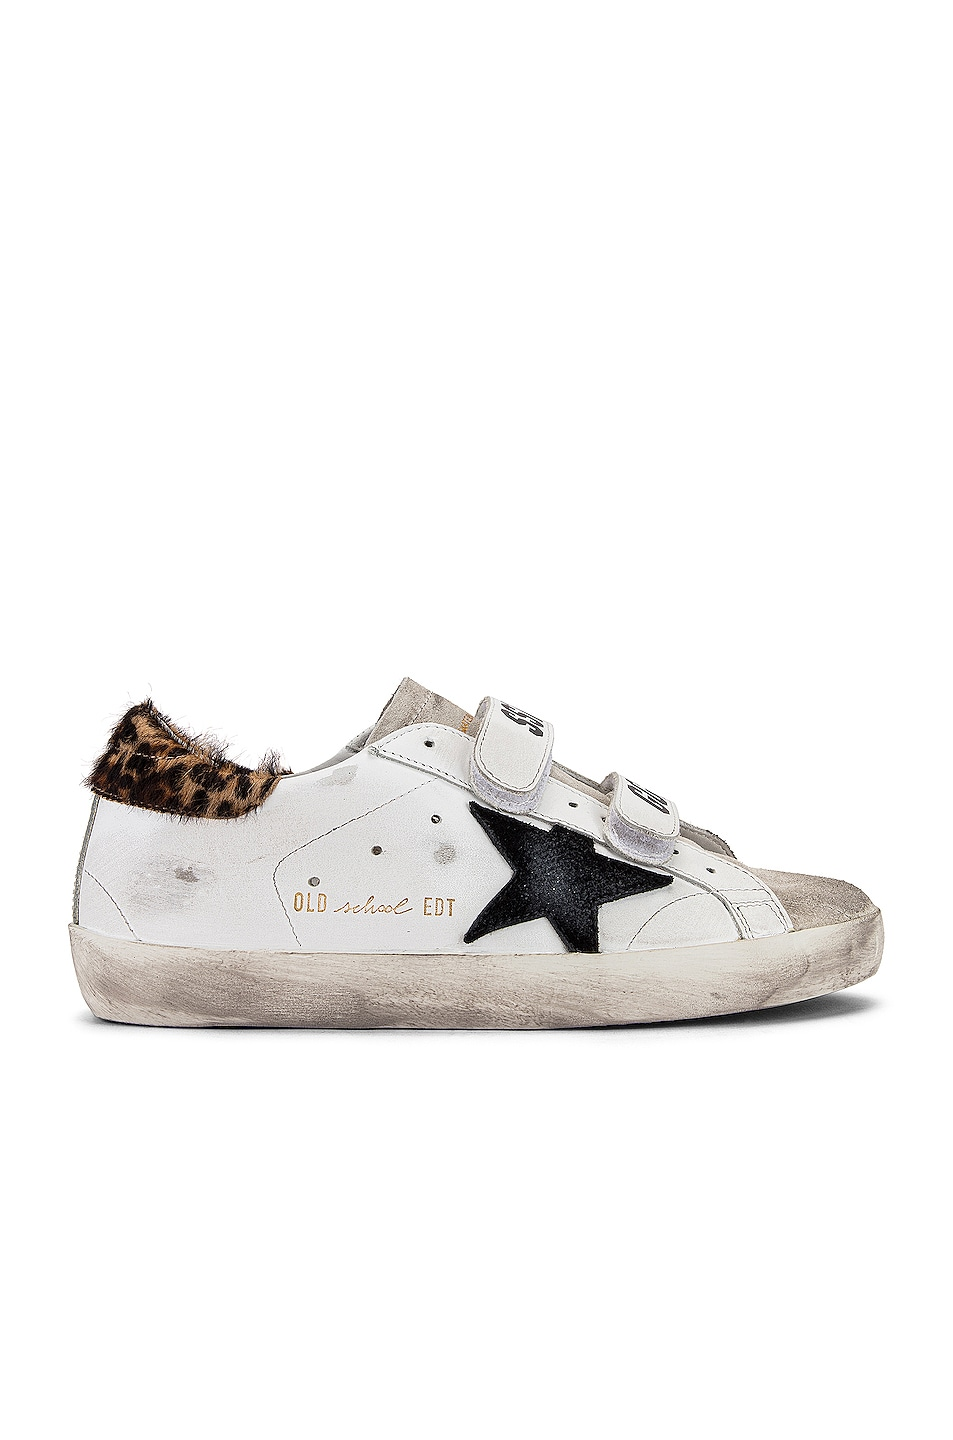 Image 1 of Golden Goose Old School Sneakers in White Leather & Leopard Pony